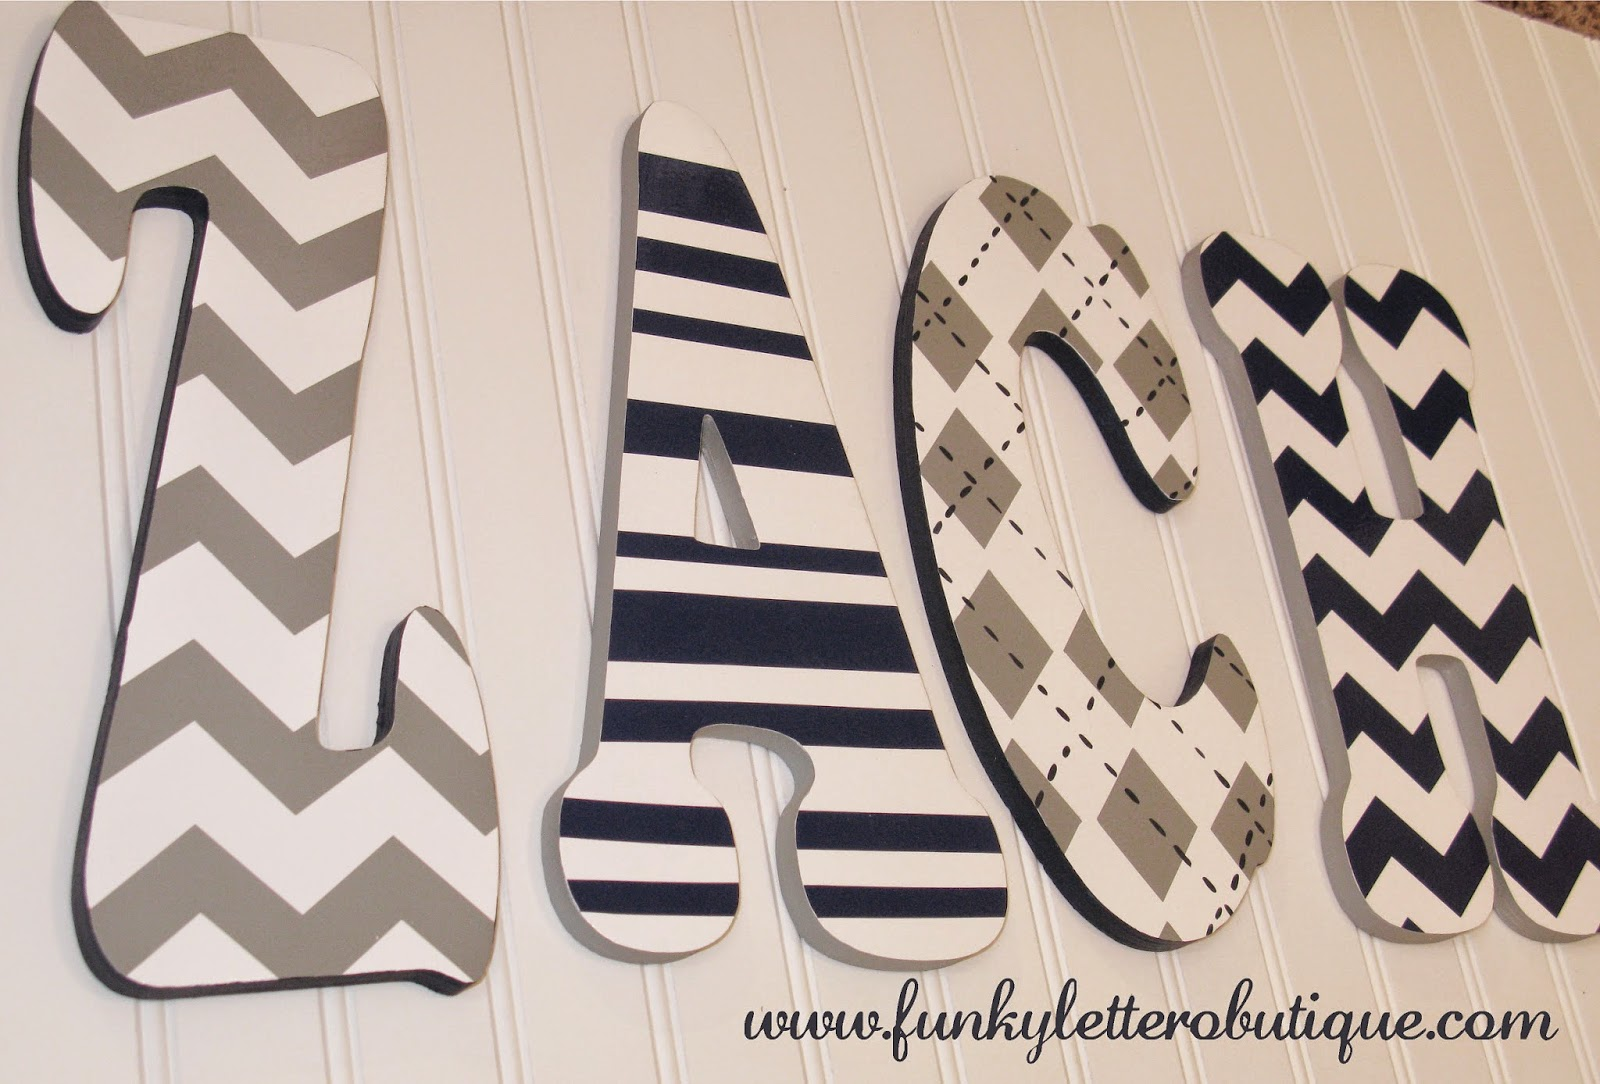 The Funky Letter Boutique